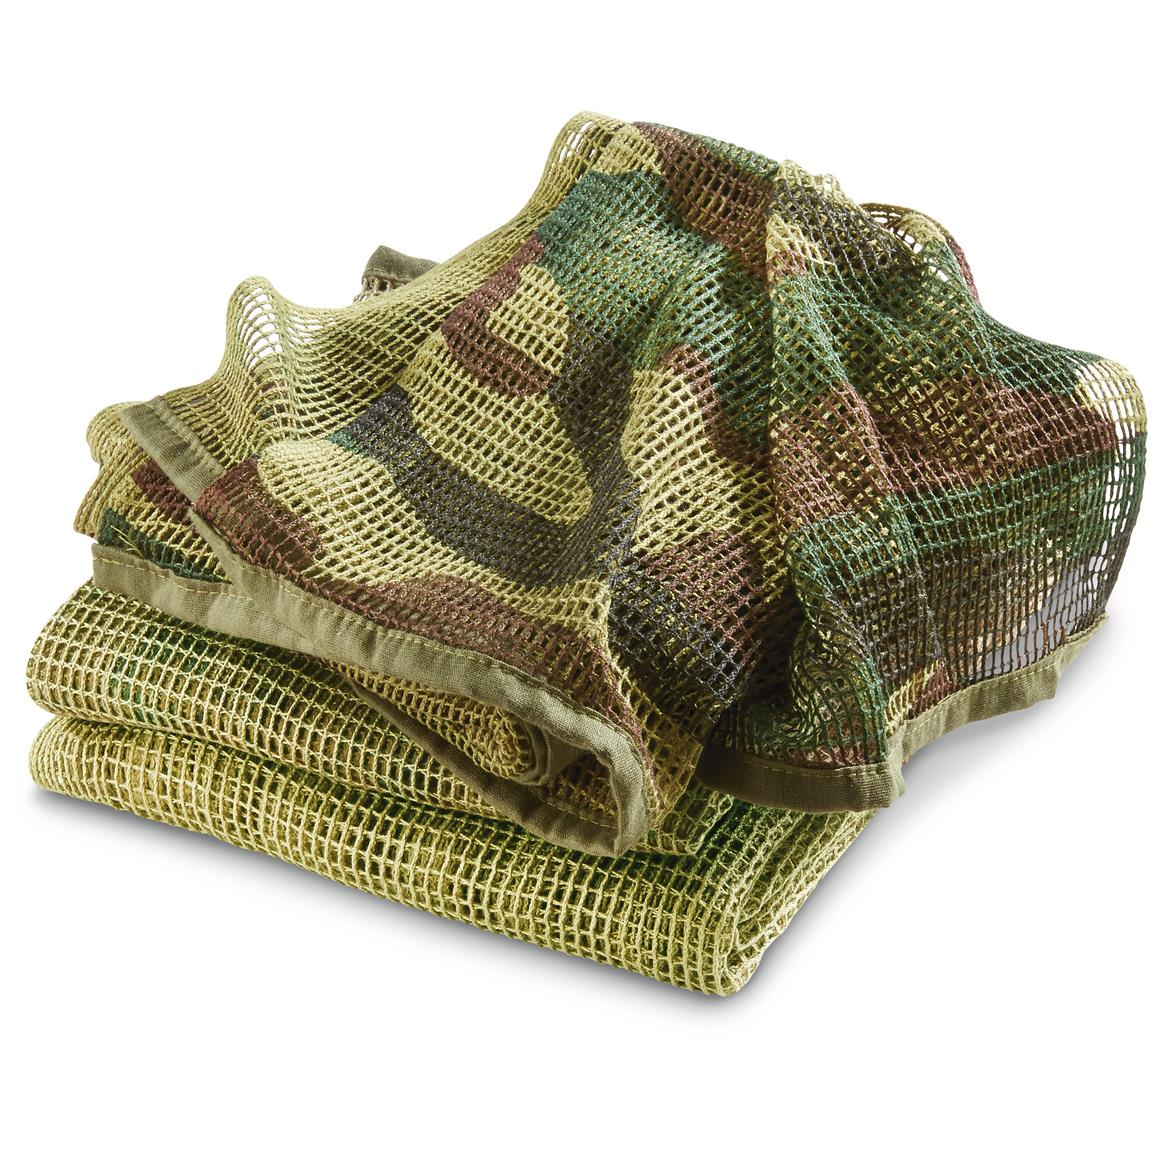 3 Red Rock Outdoor Gear™ Sniper Veils, Woodland